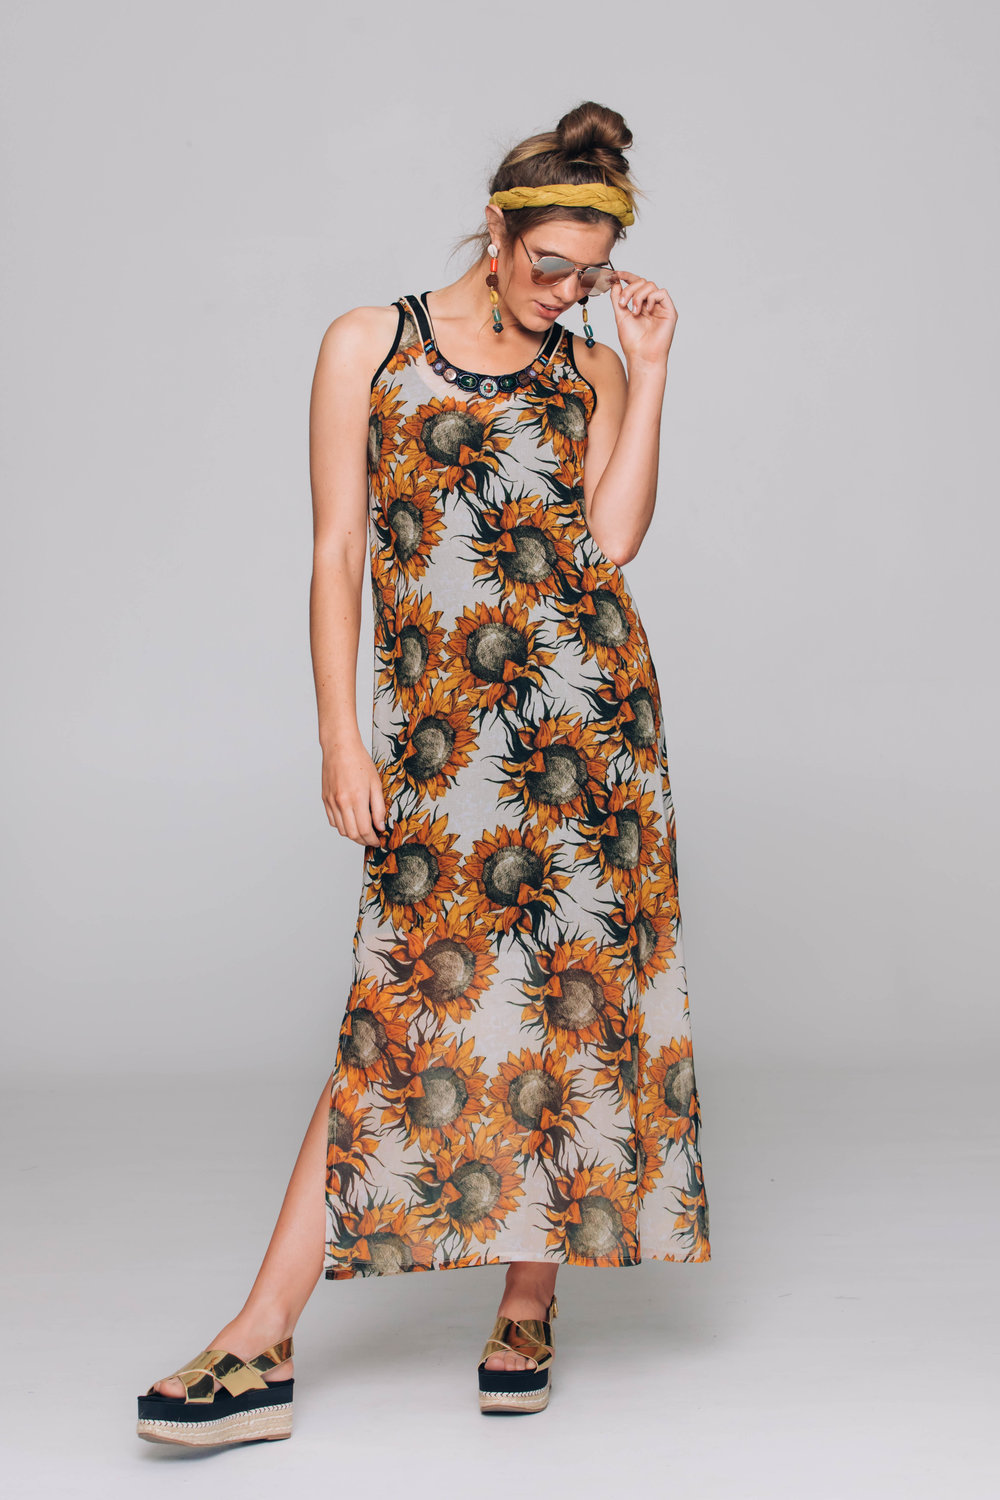 6021T Sunset Dress, Large Sunflowers